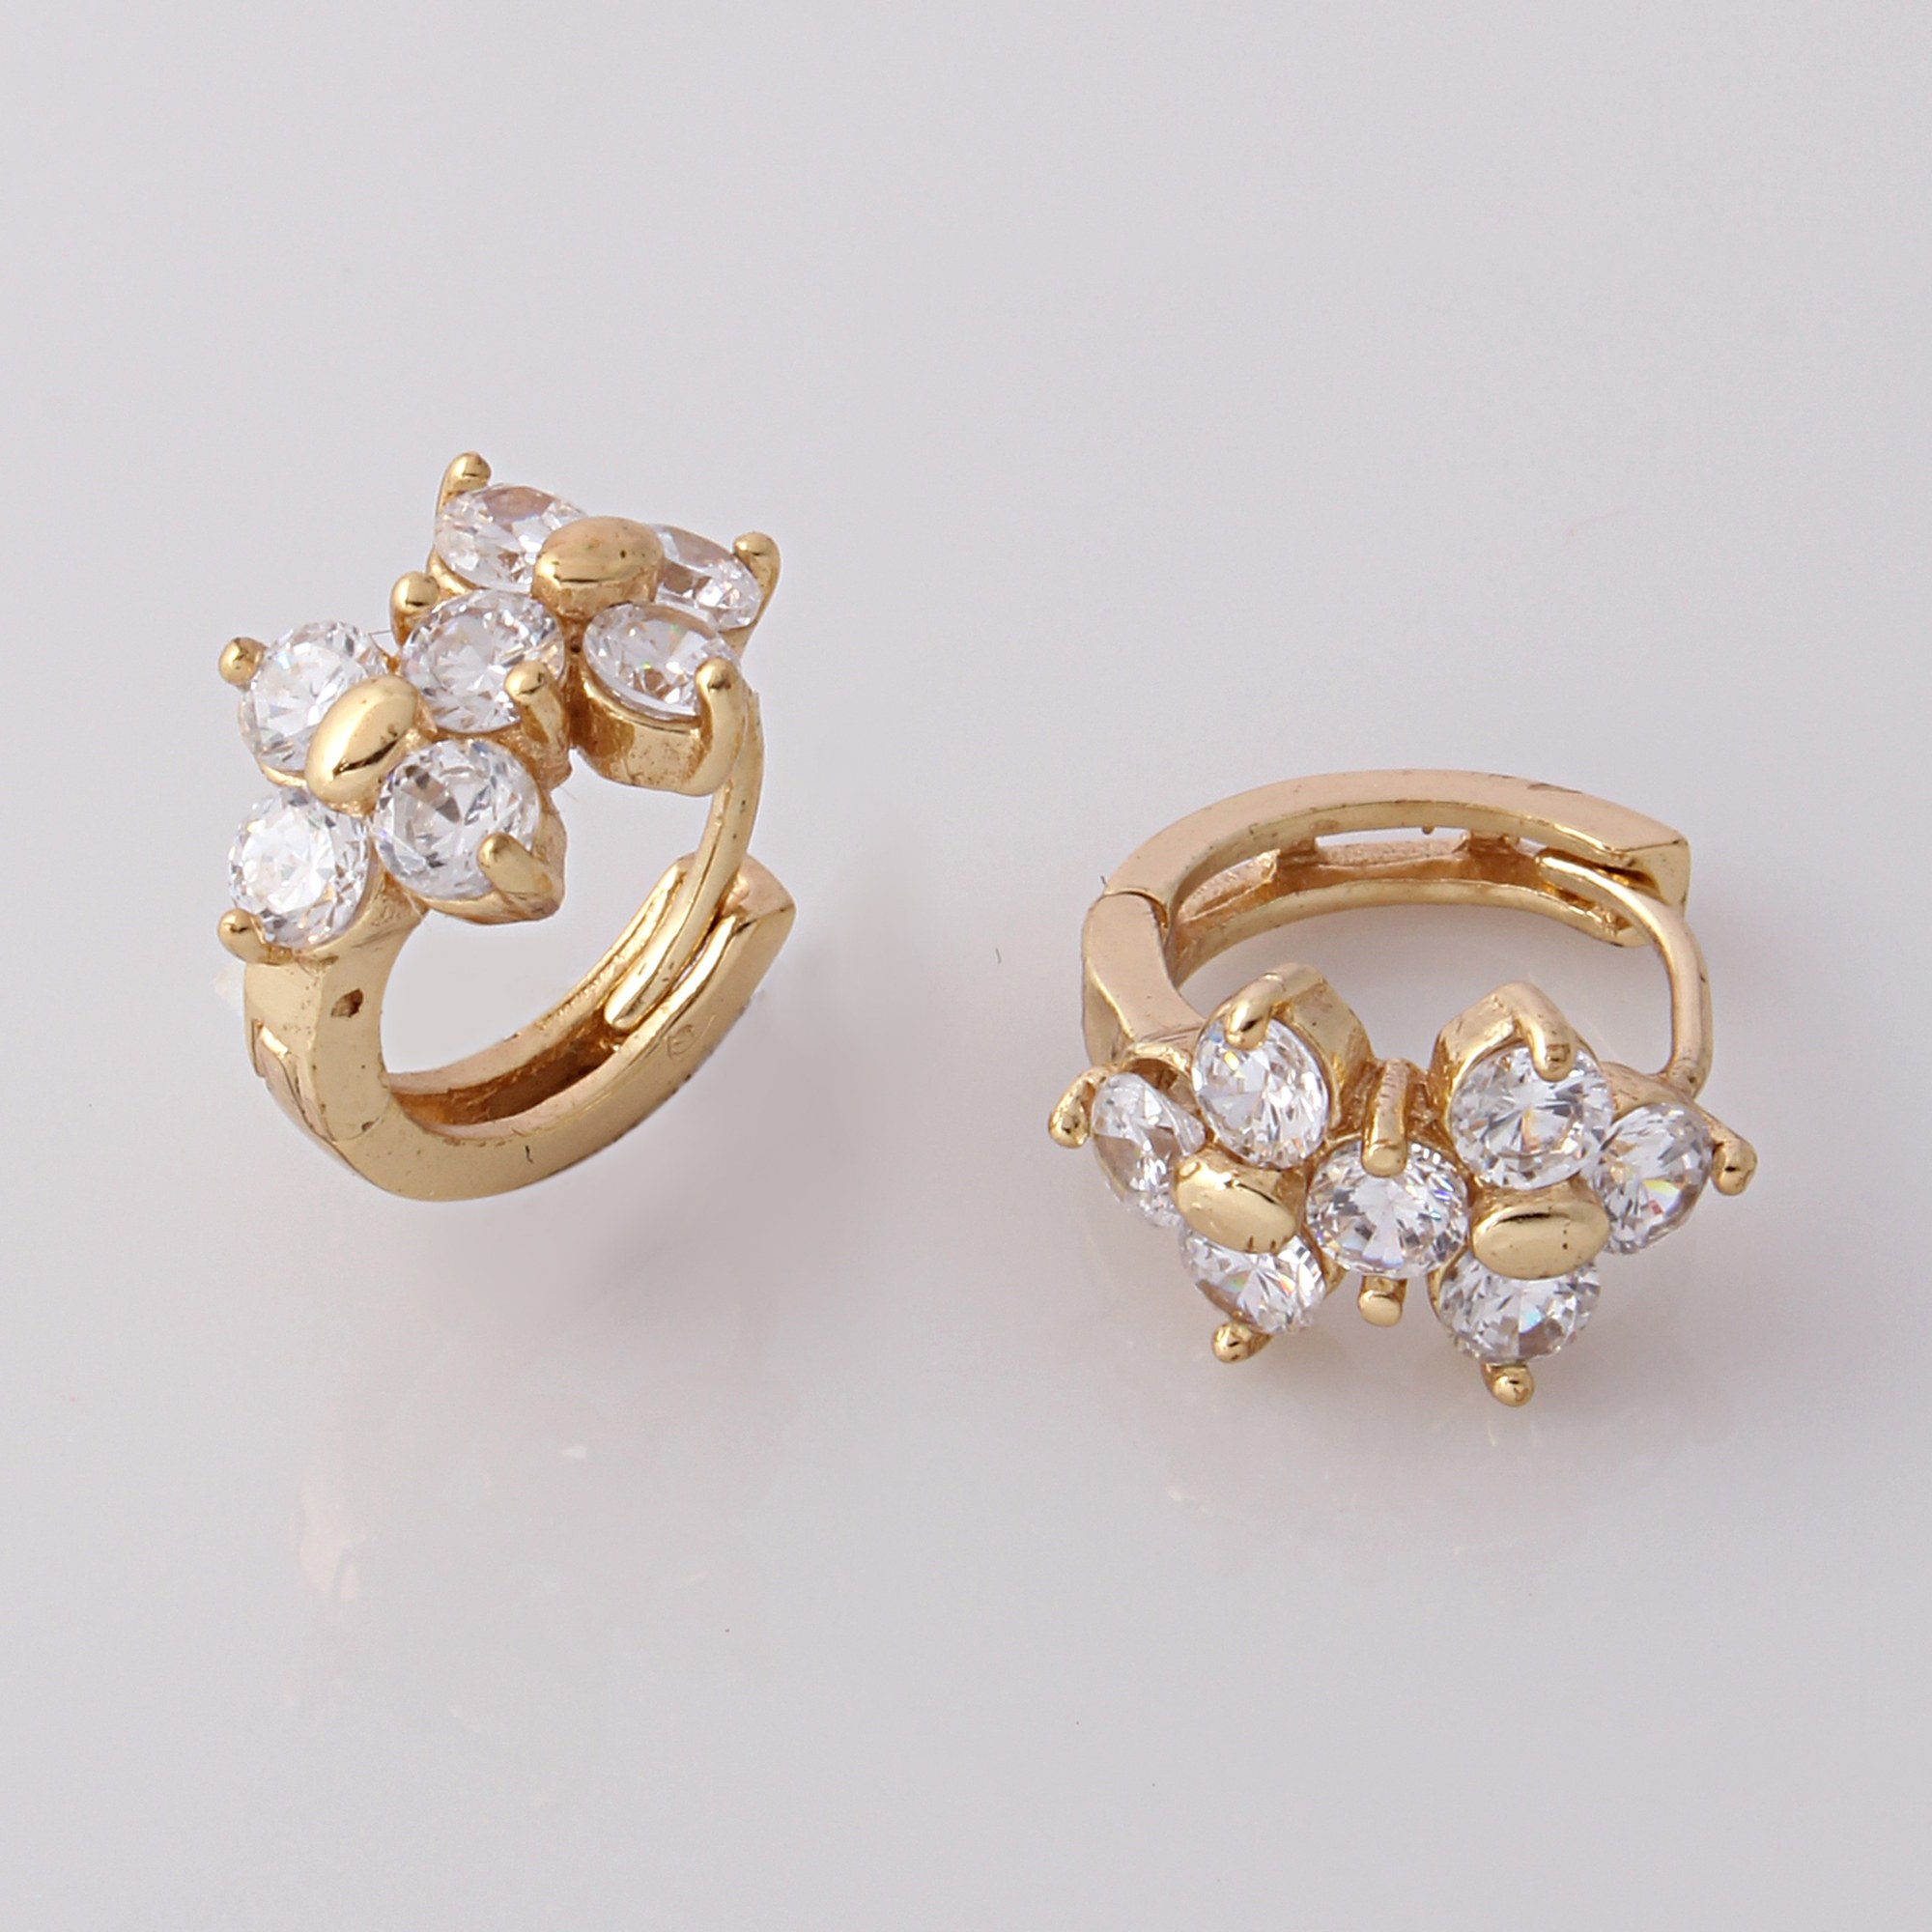 the earring daily online casual jewellery pearl diamond buy earrings wear india rich carat